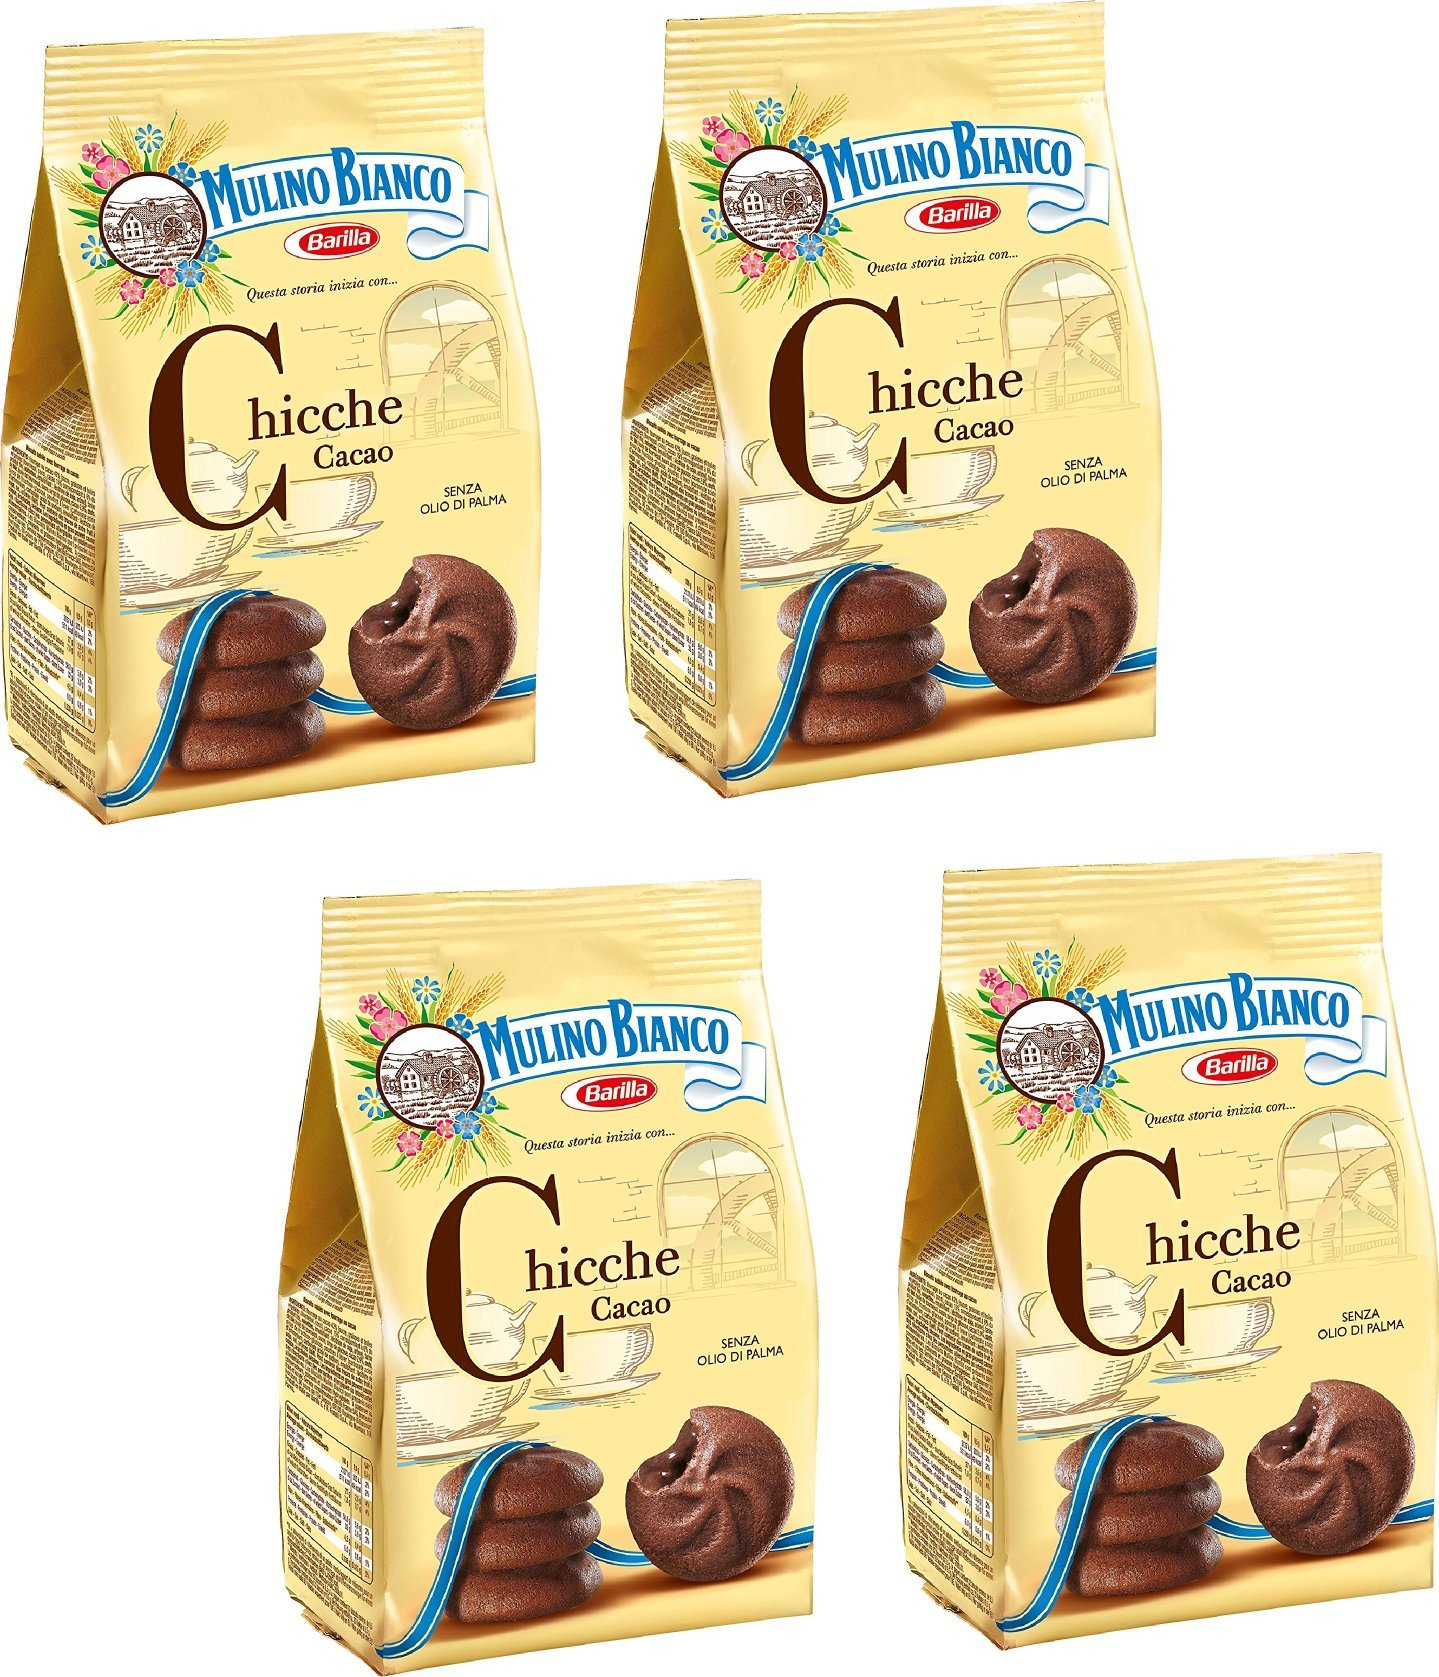 Mulino Bianco: ''Chicche'' Shortcake filled with cocoa cream - 7.05 Oz (200g) Pack of 4 [ Italian Import ]